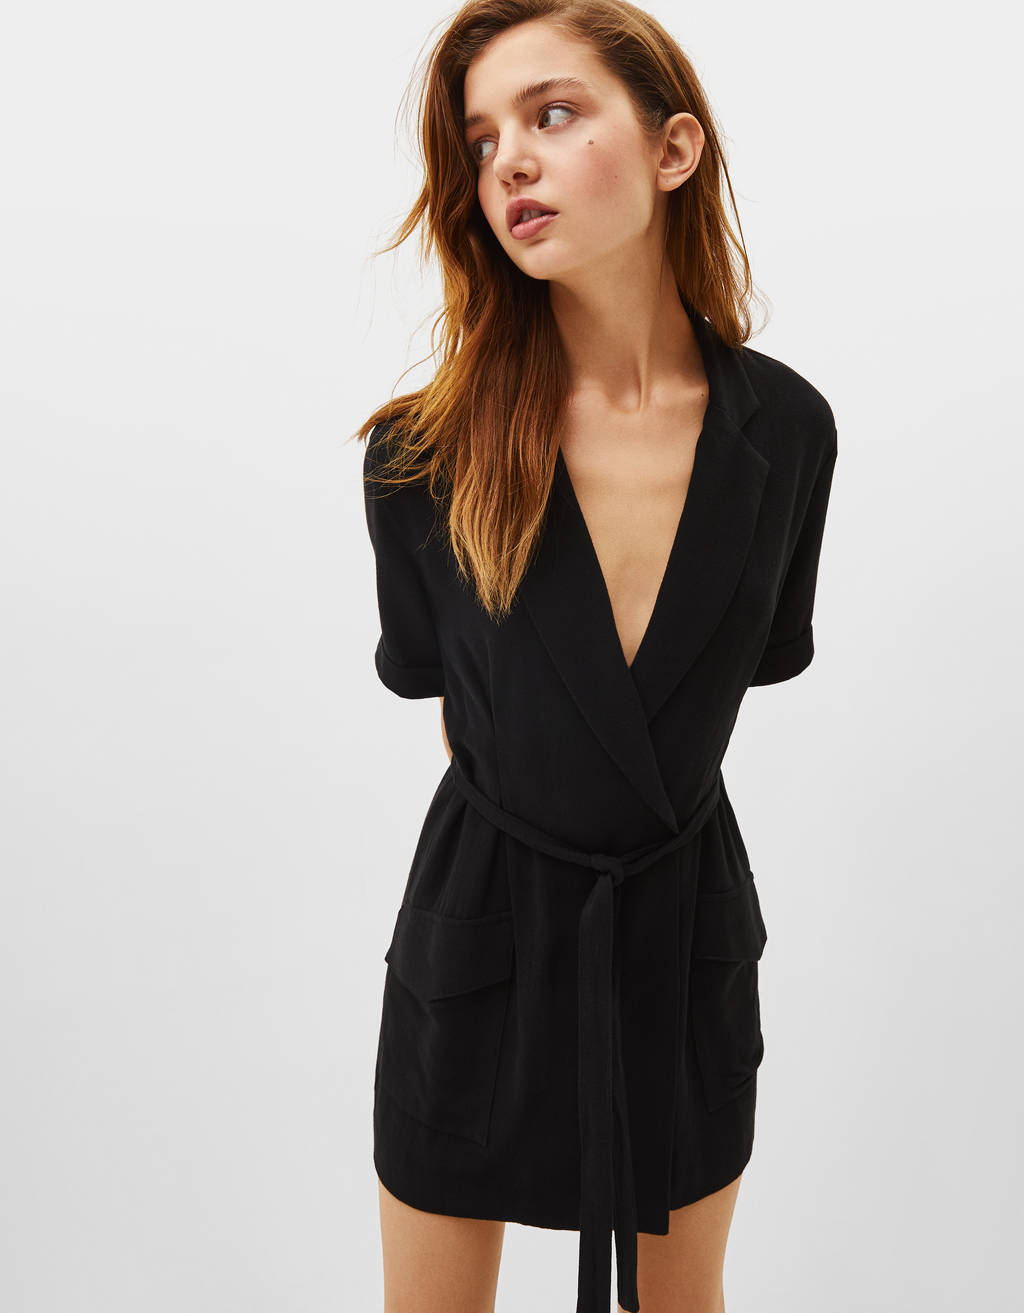 Blazer-style dress with tie detail